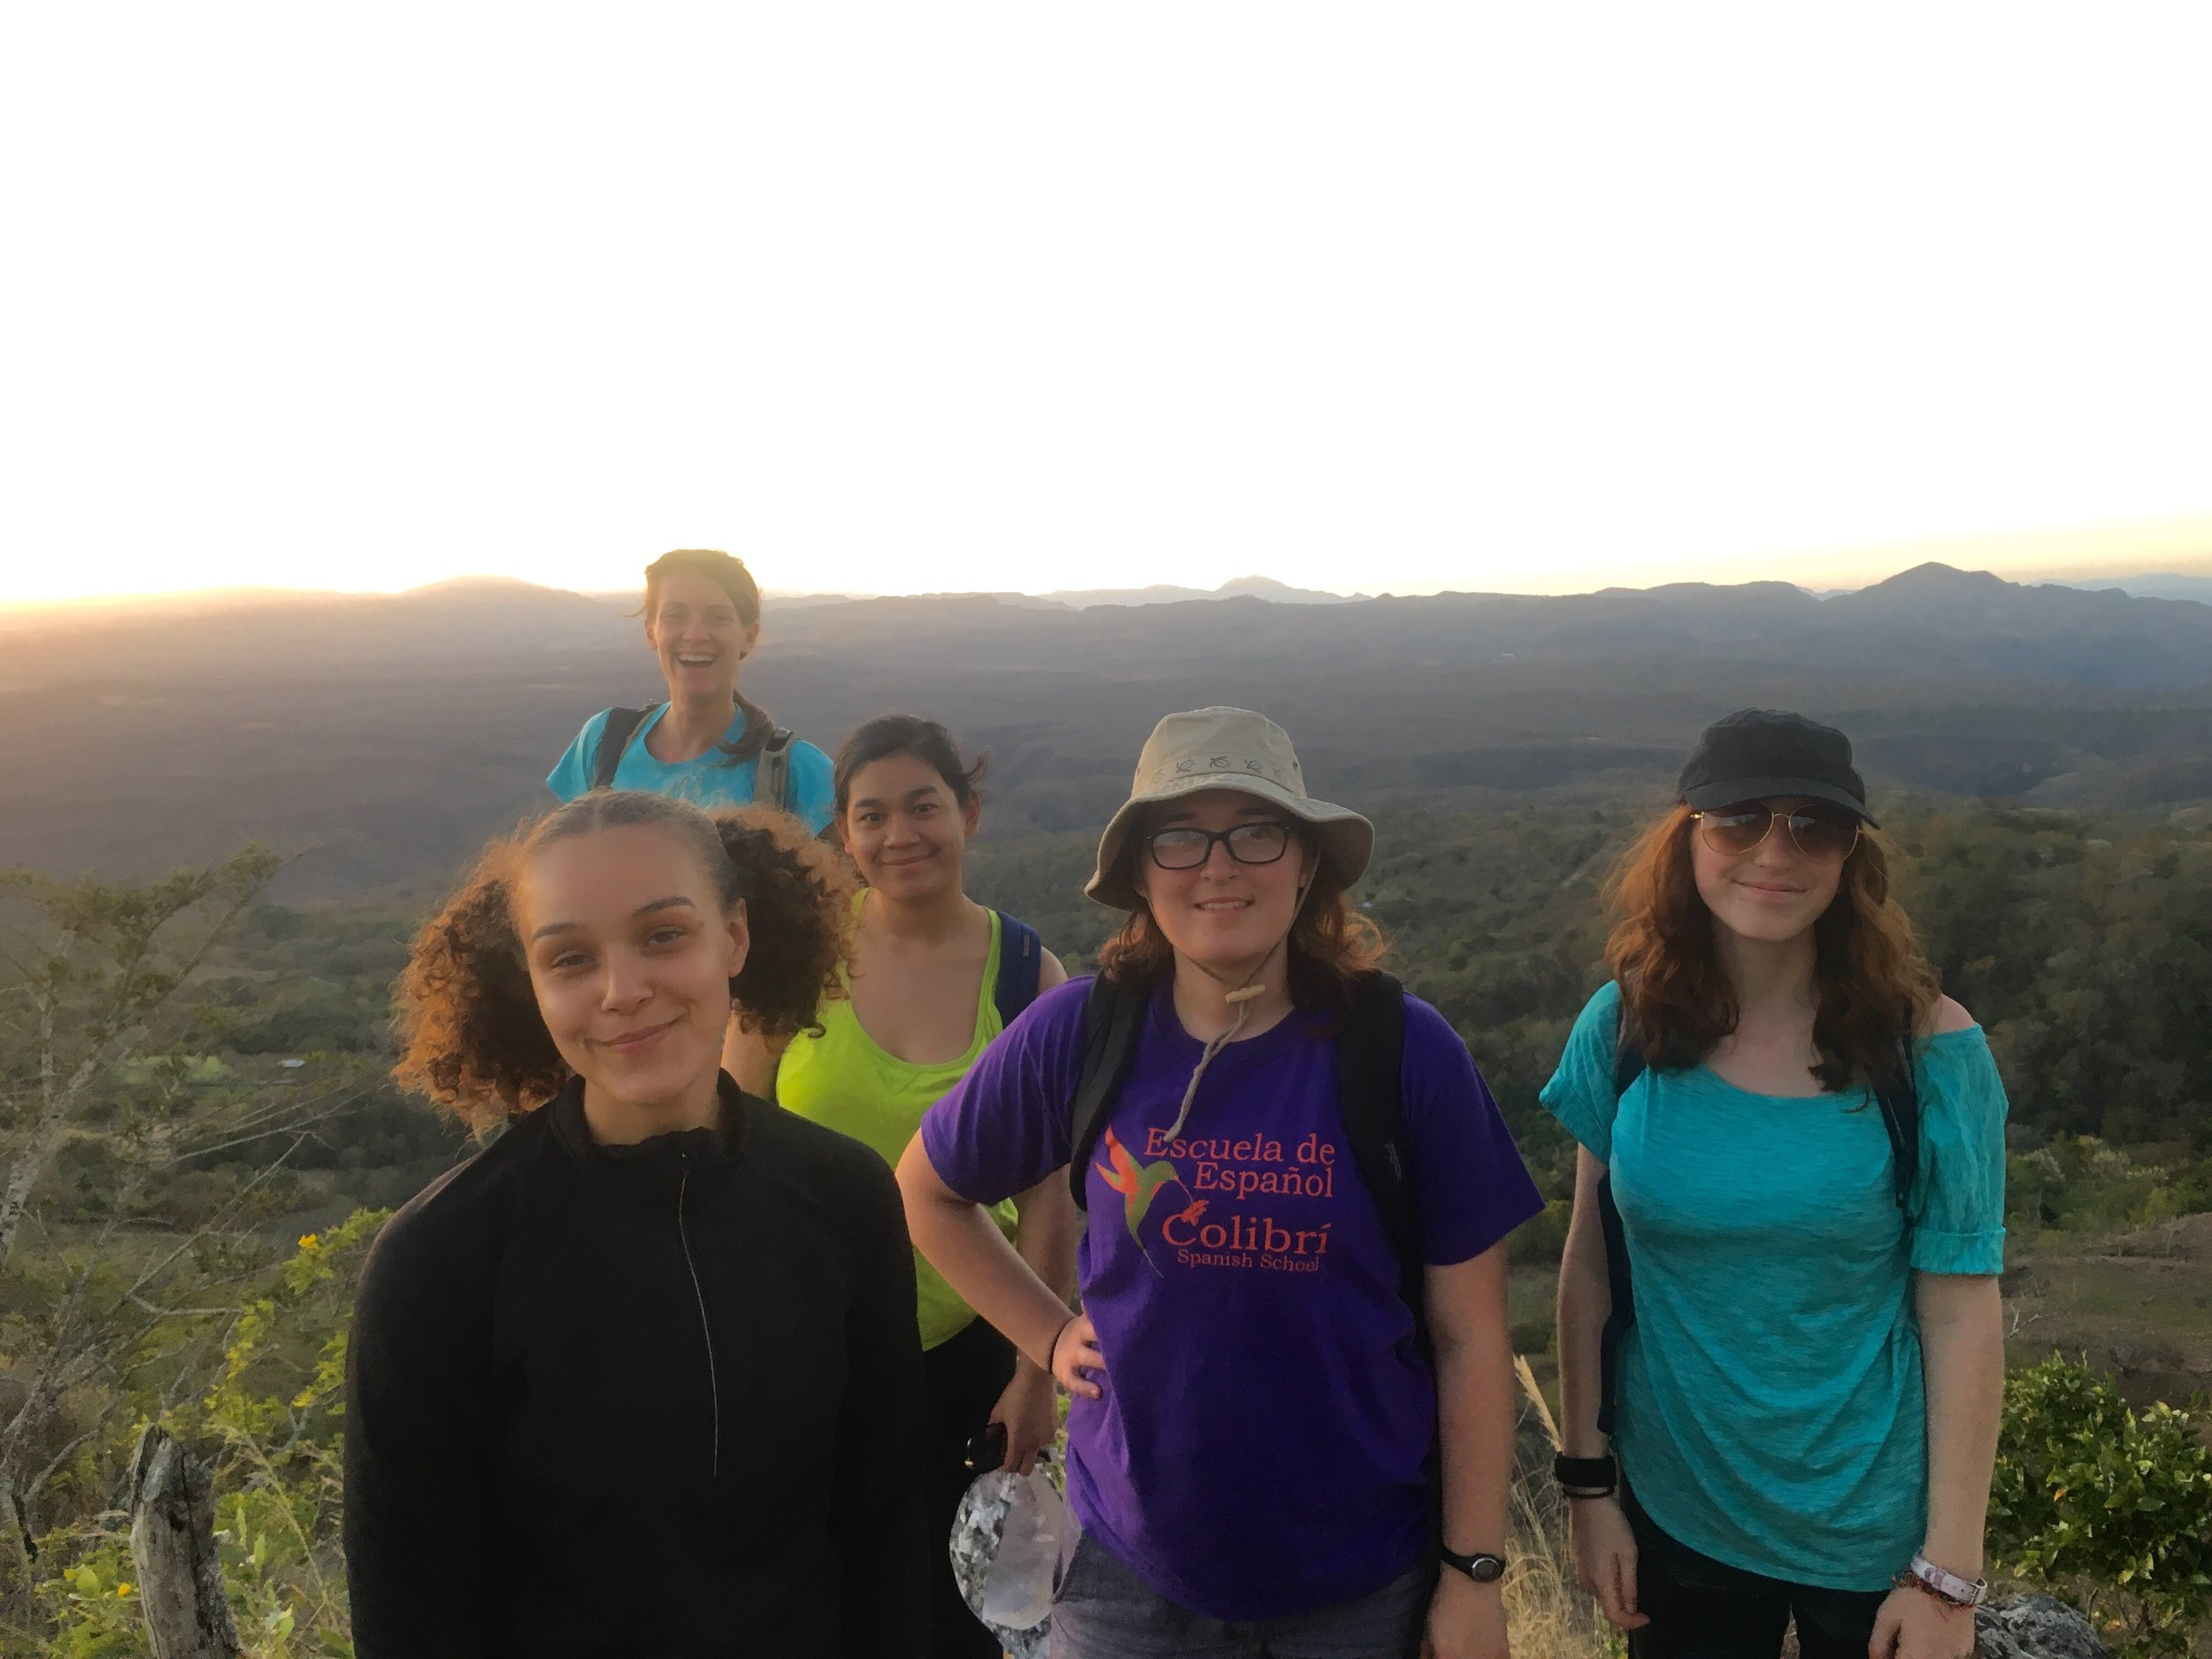 Sunset hike to learn about the zones of the land, see Honduras, and watch the sun set.